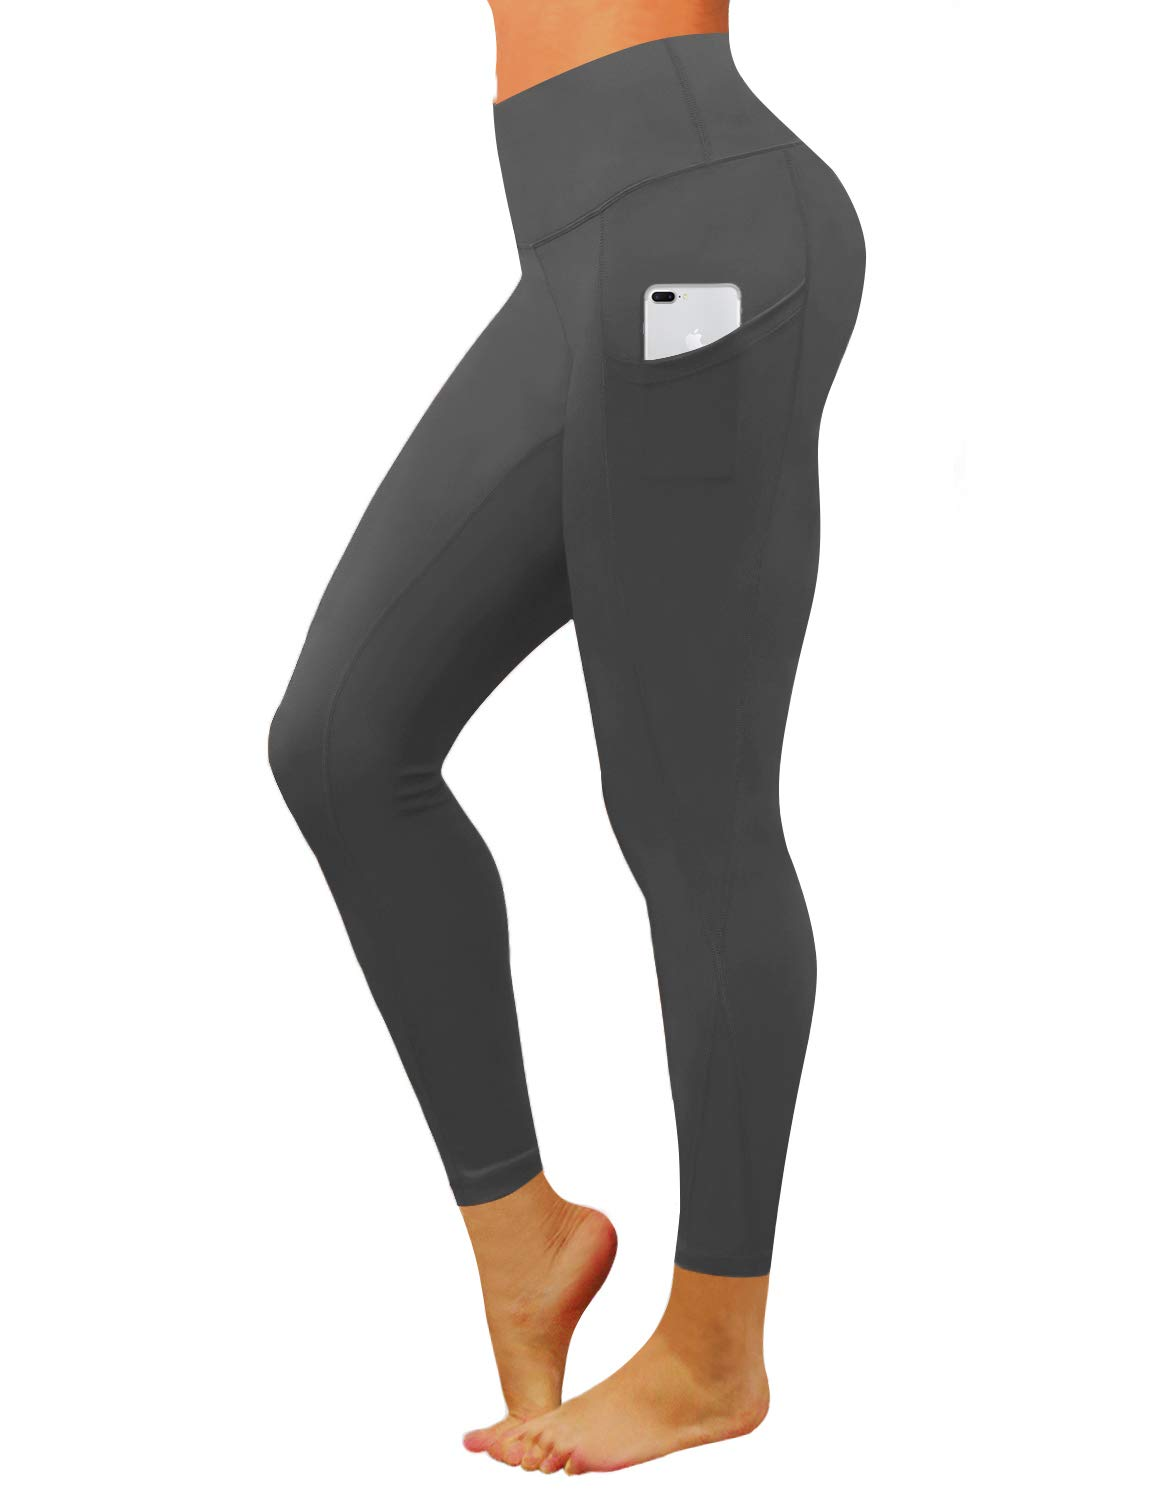 BUBBLELIME High Compression Yoga Pants Out Pocket Running Pants High Waist Power Flex Moisture Wicking UPF30+, Bwwb010 Shadowcharcoal, X-Small